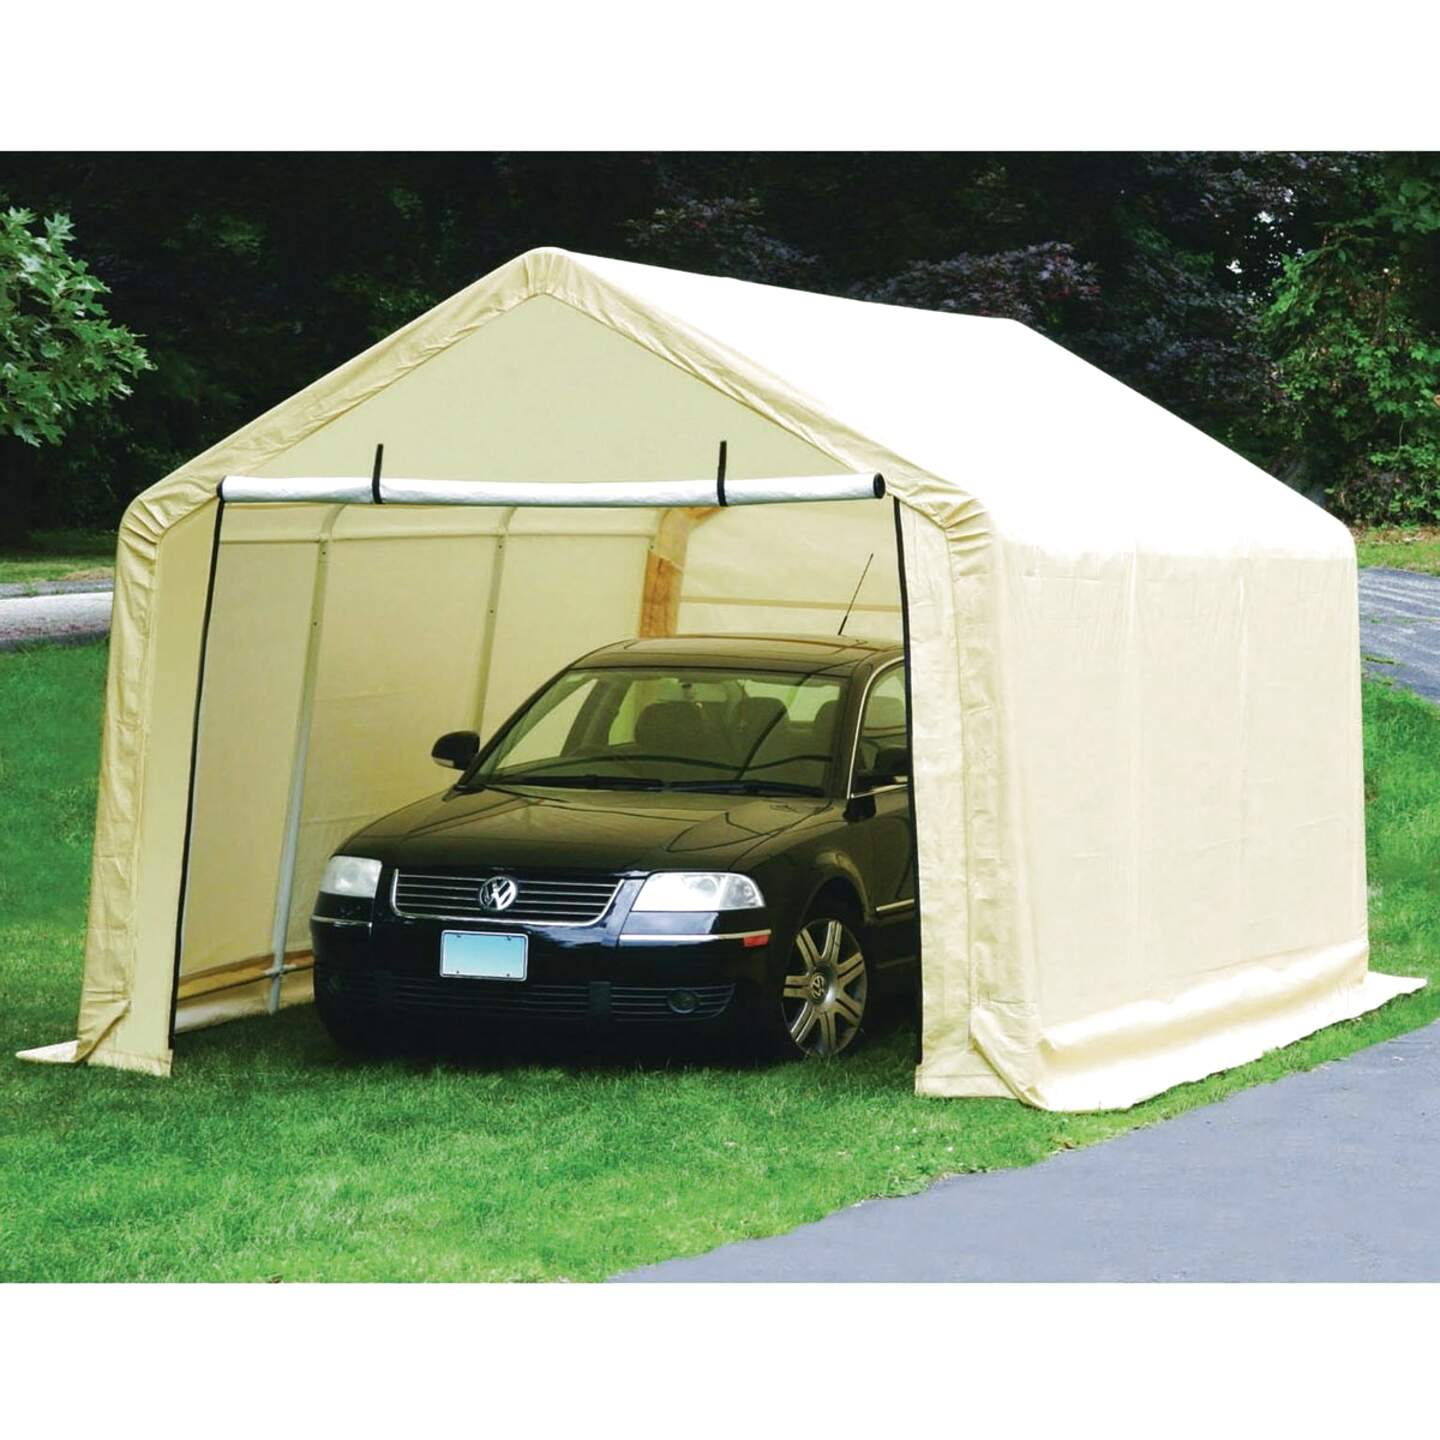 Portable Garage for sale in UK   34 used Portable Garages